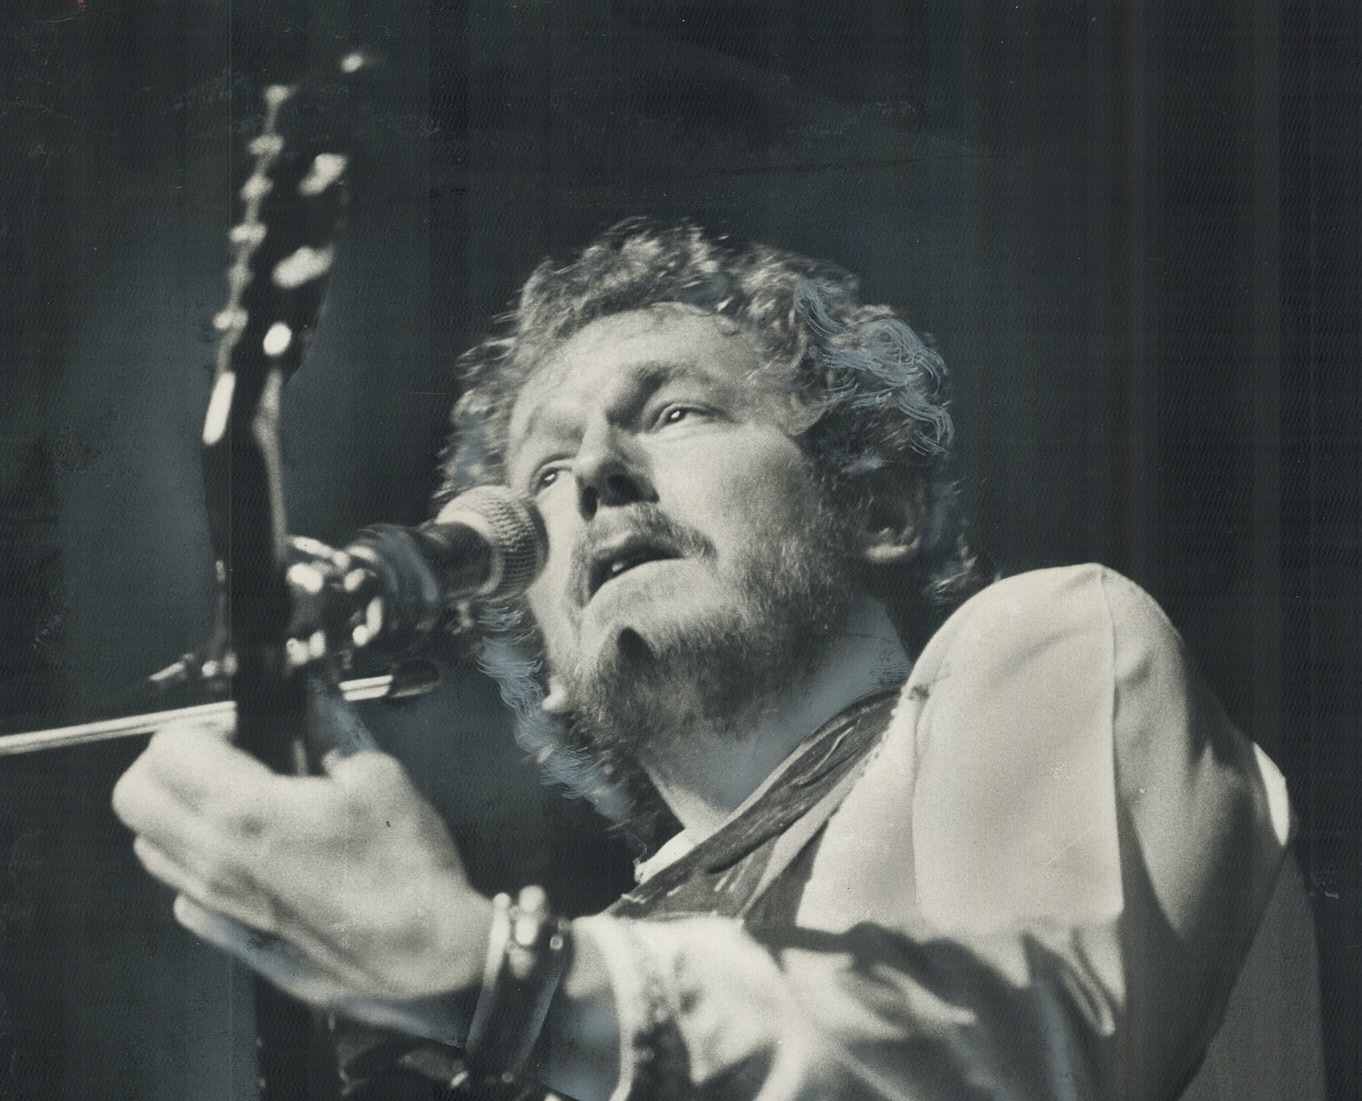 A man with wavy hair and a light beard plays guitar and sings into a microphone.